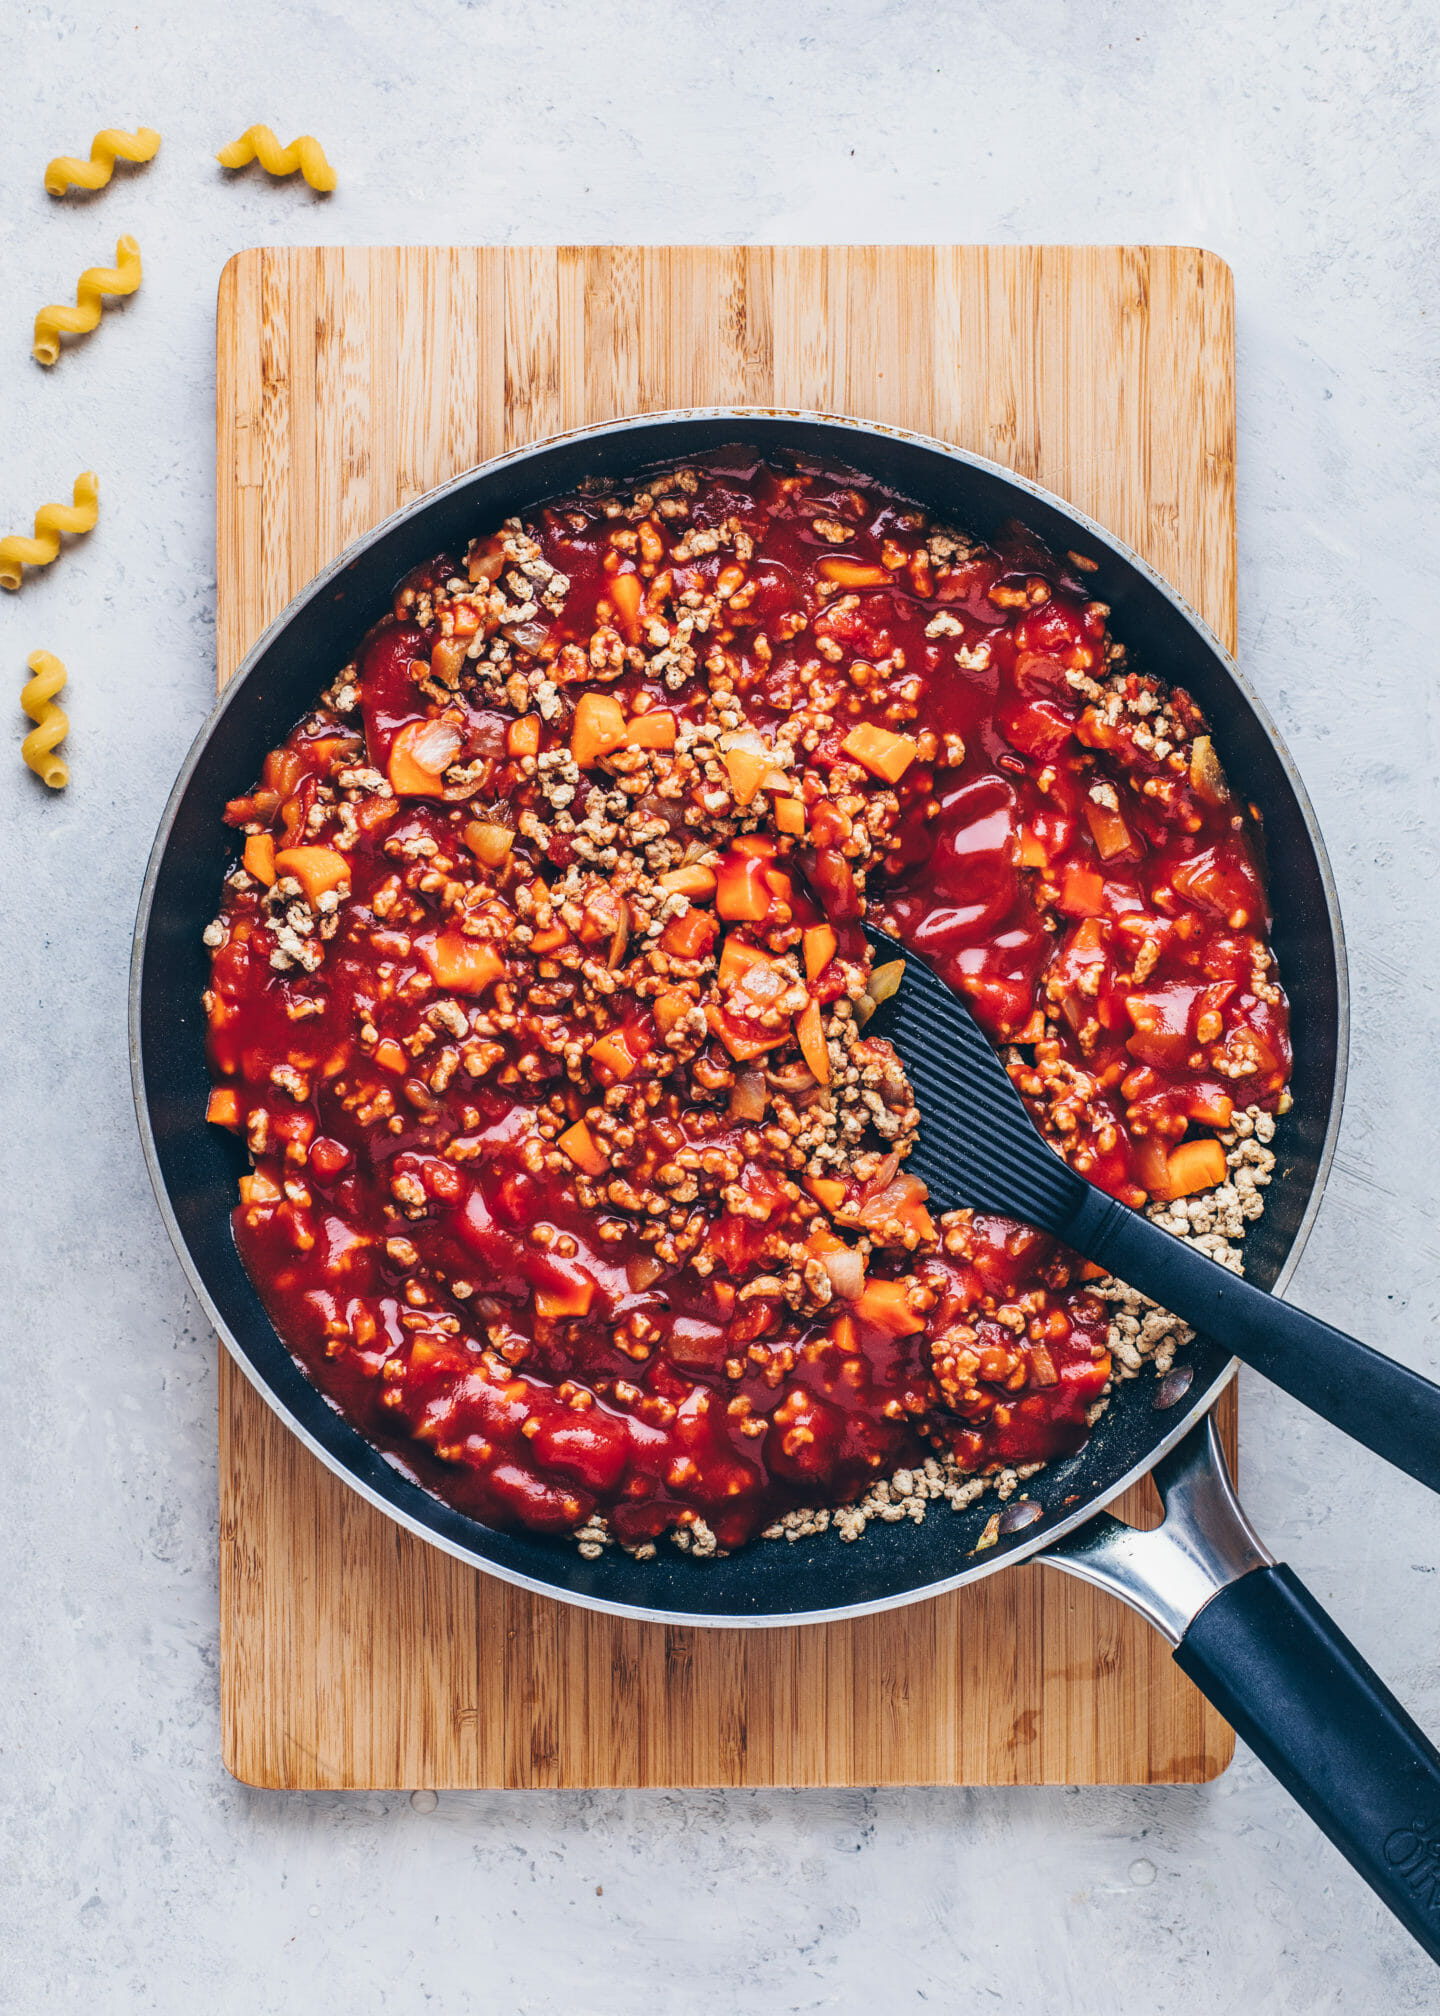 Vegan Bolognese sauce with onions, garlic, carrots, tomatoes and vegan mince meat in a pan